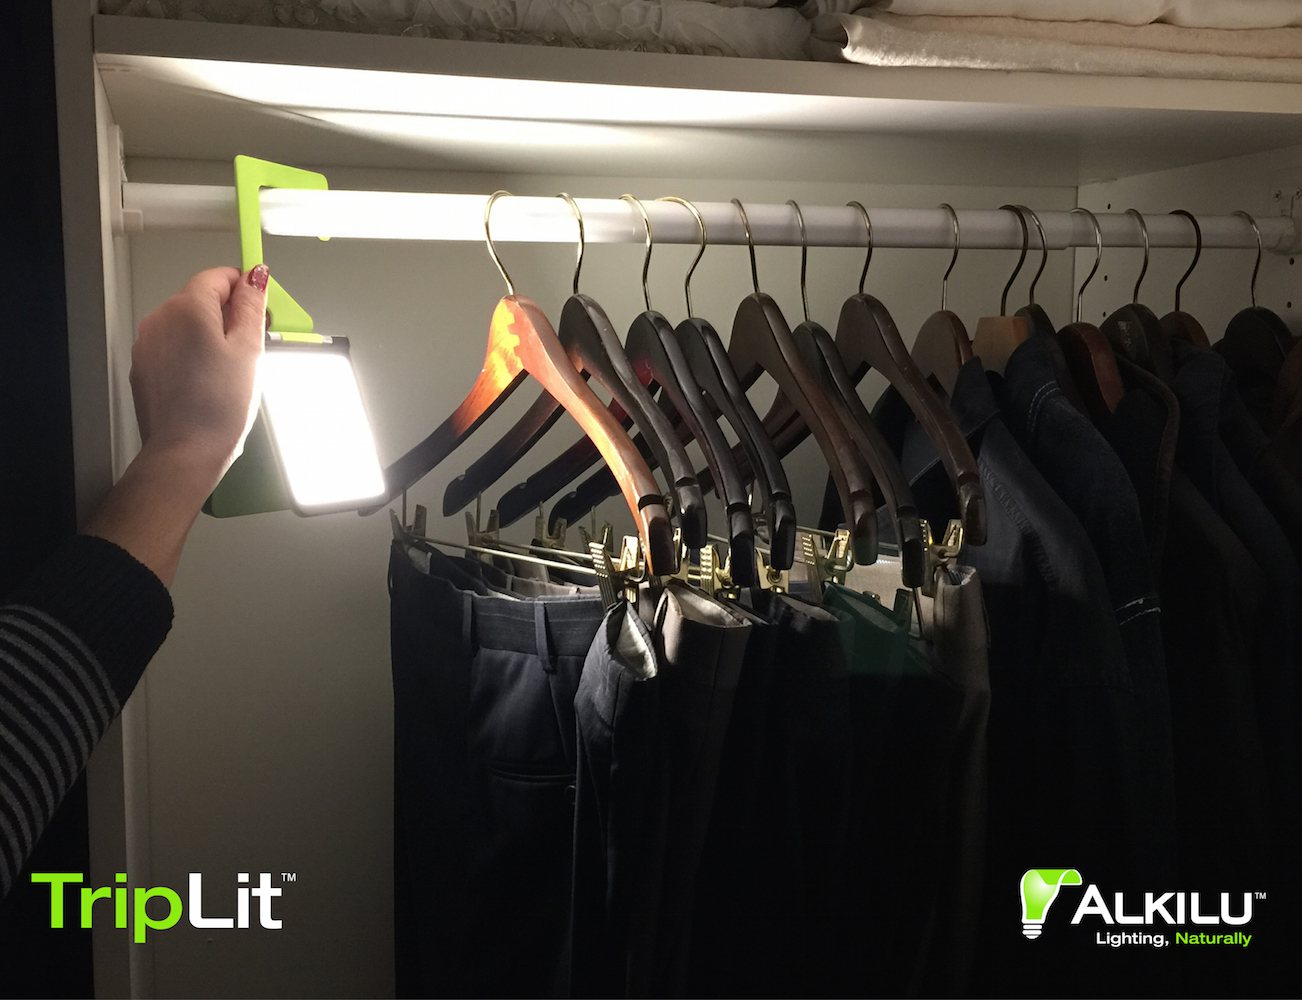 TripLit – Portable Organic LED Lamp